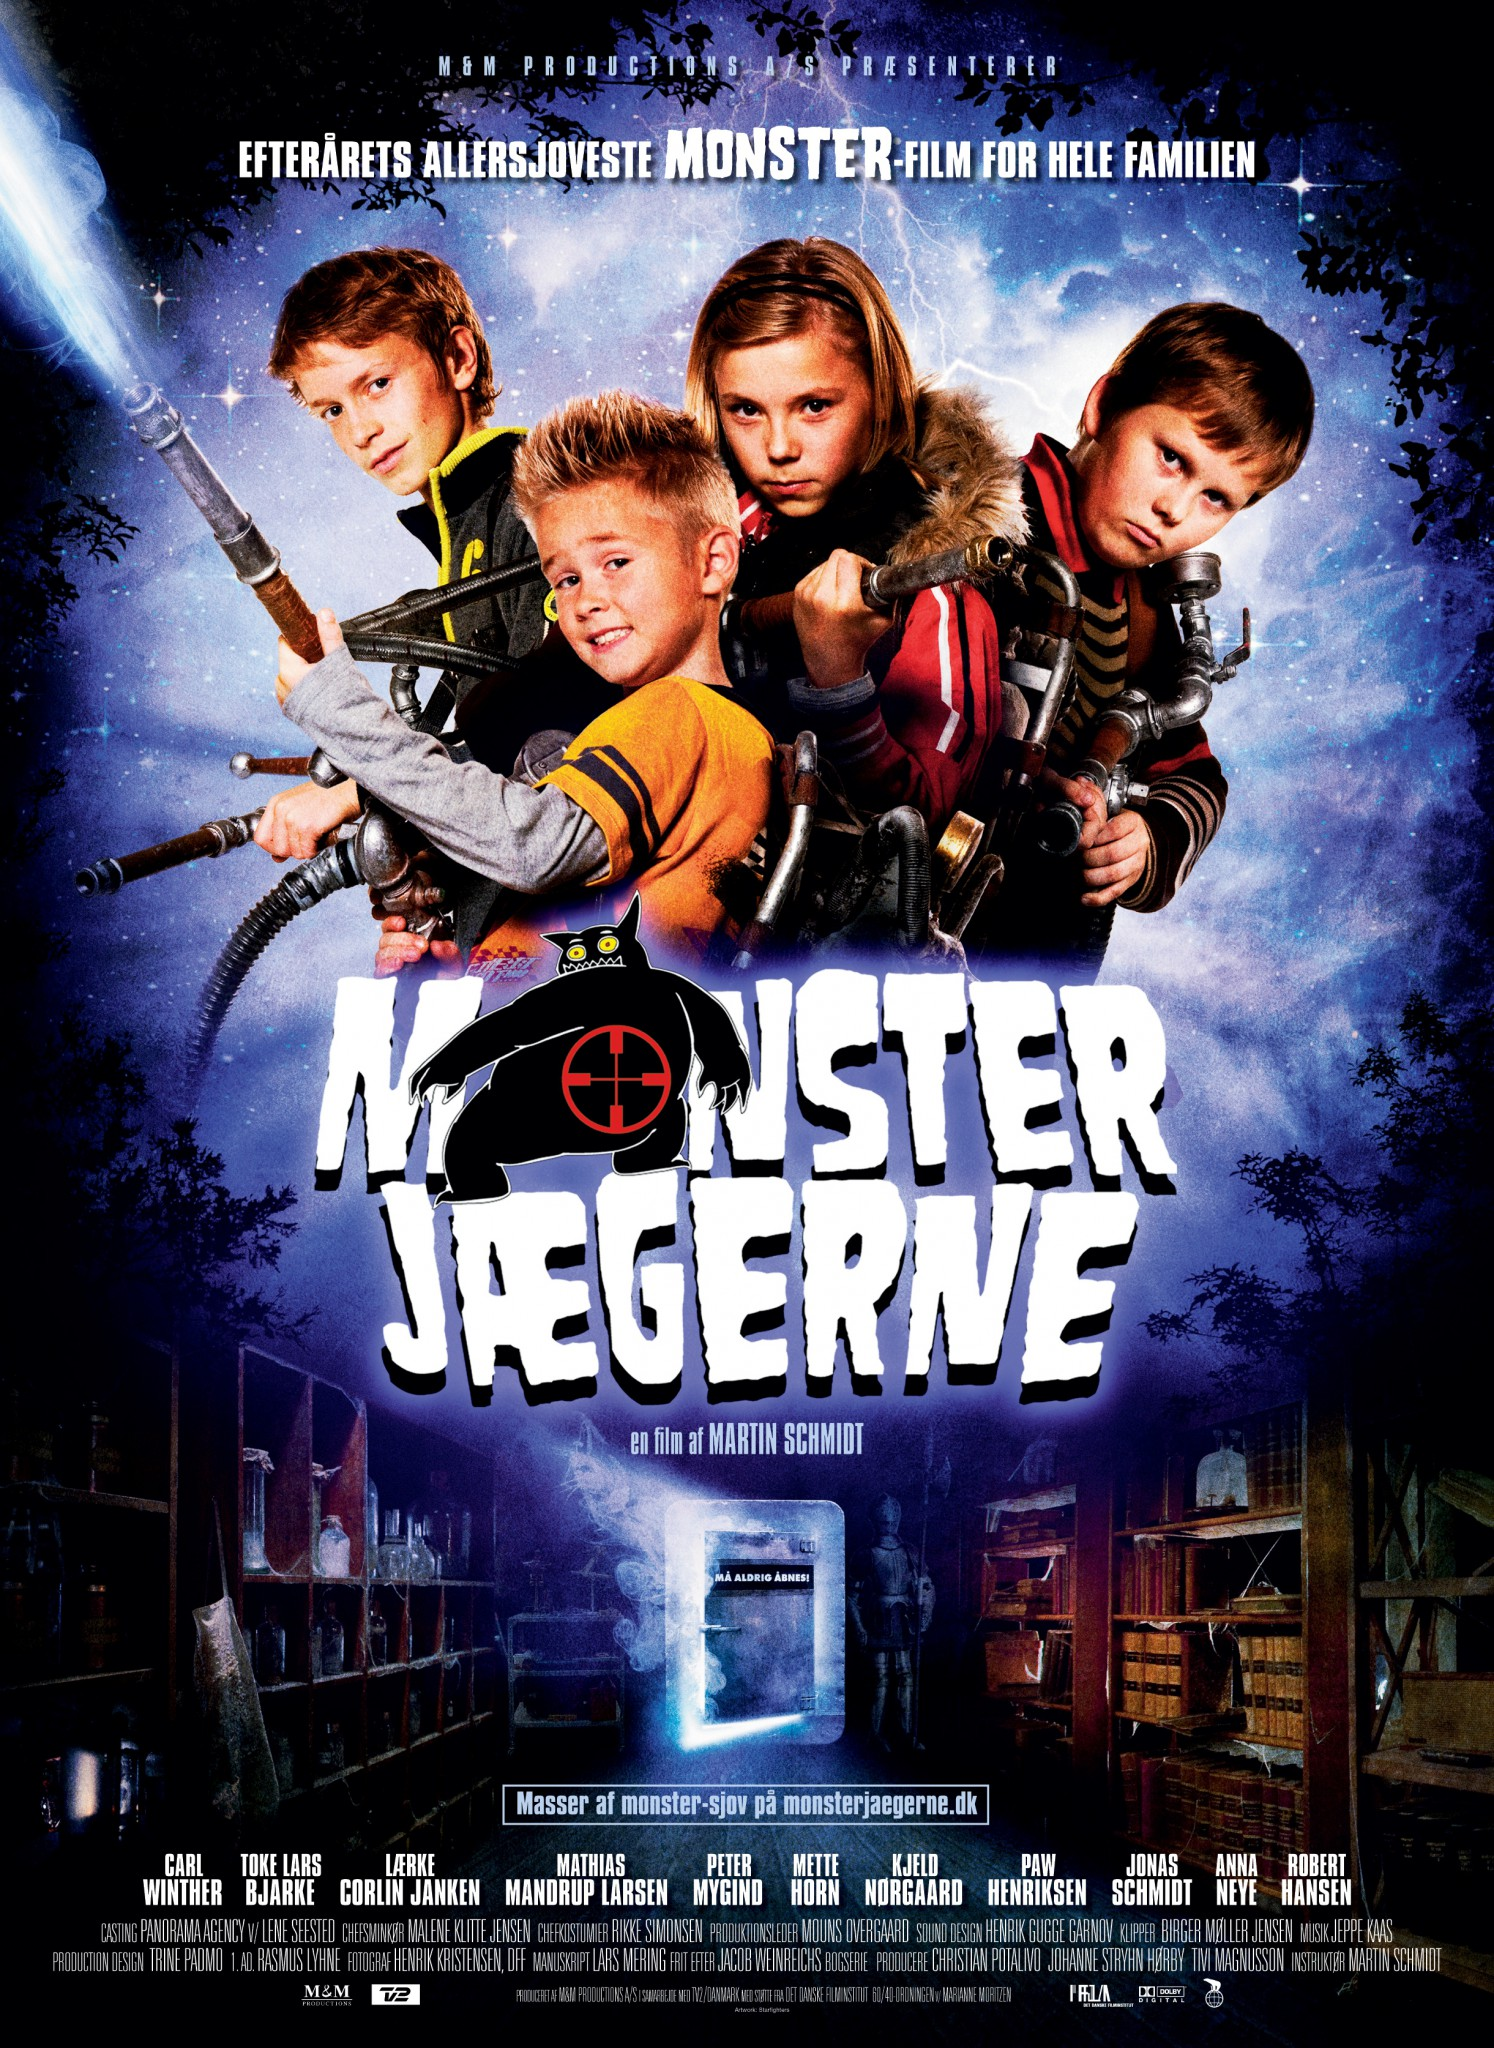 Monsterjægerne